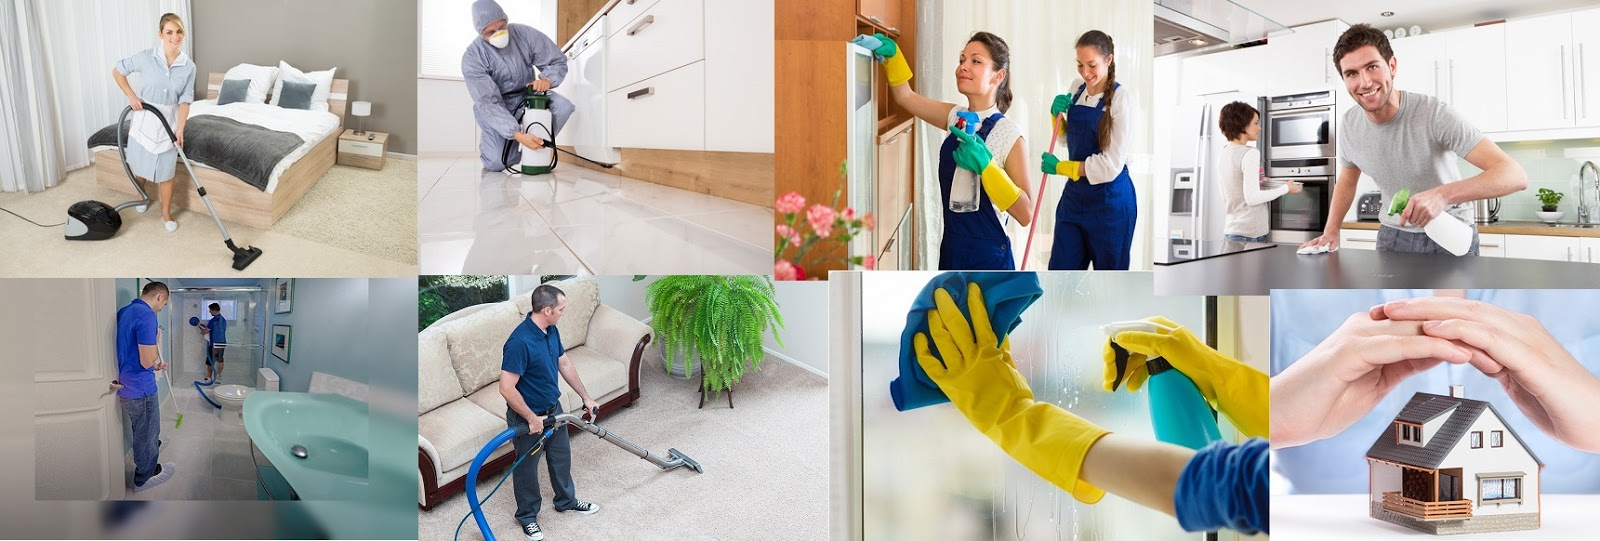 Bond and Exit Cleaning Service | Bpure Cleaning Services